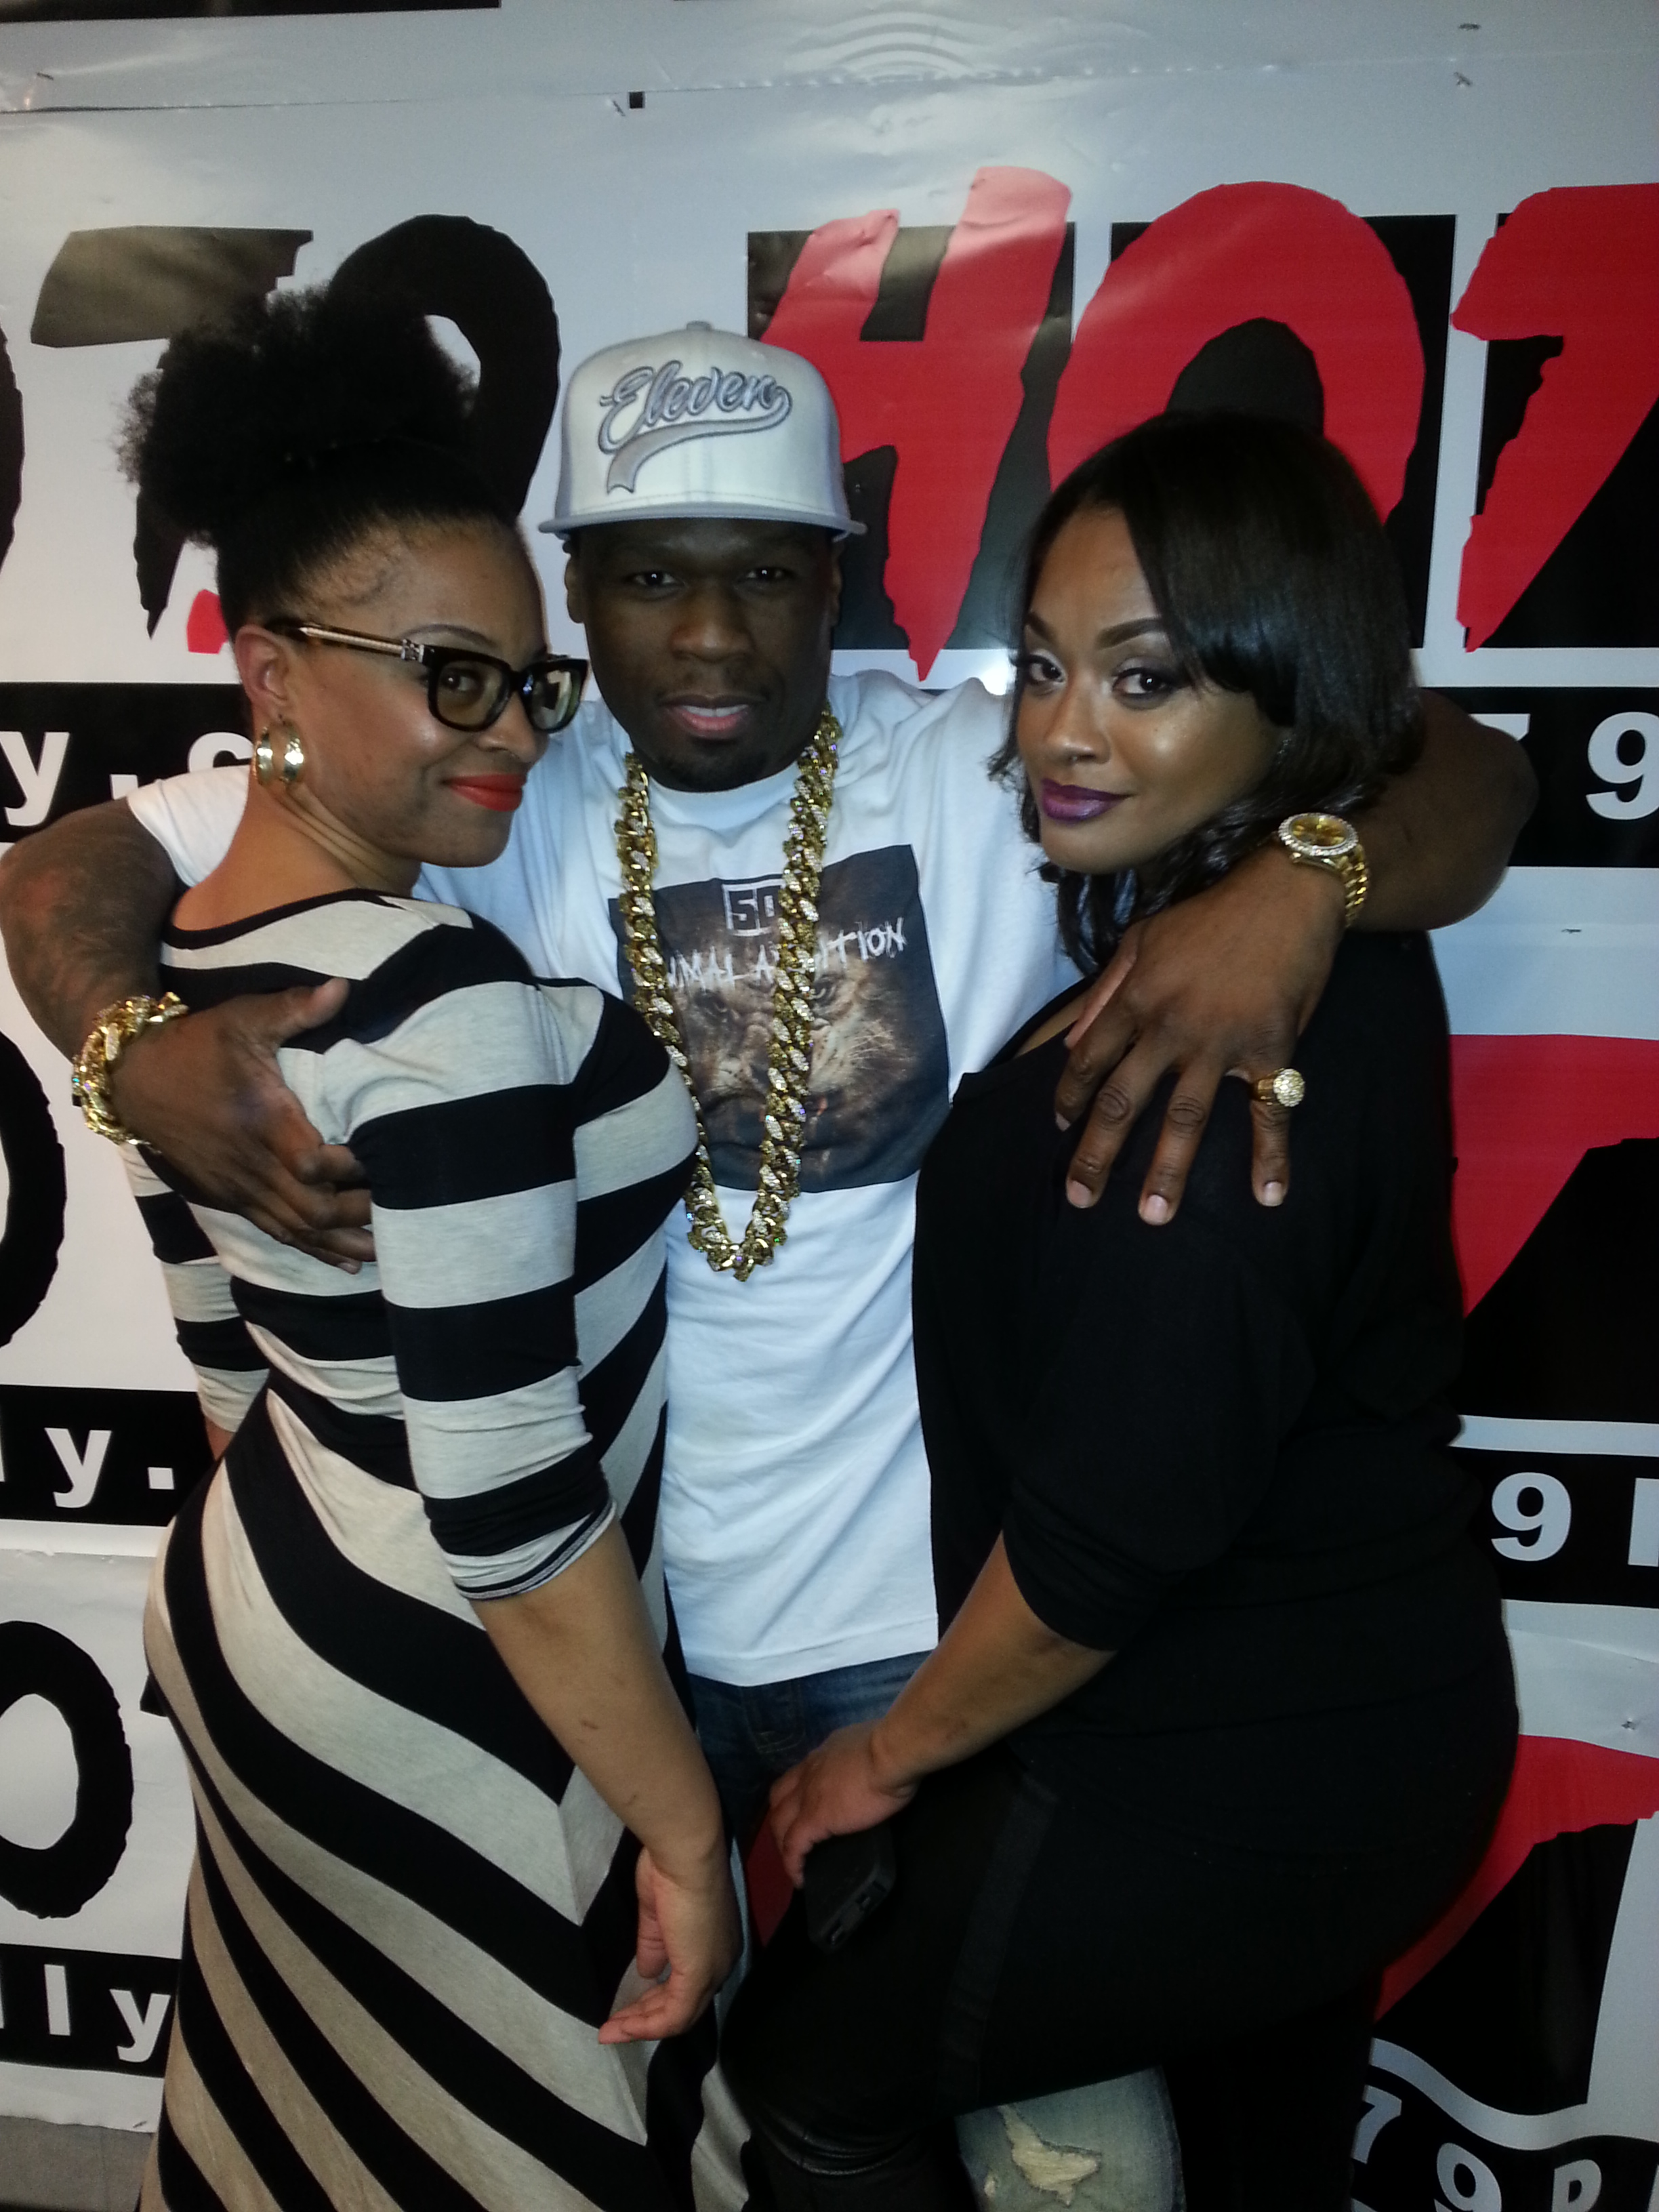 50 cent and pms 2